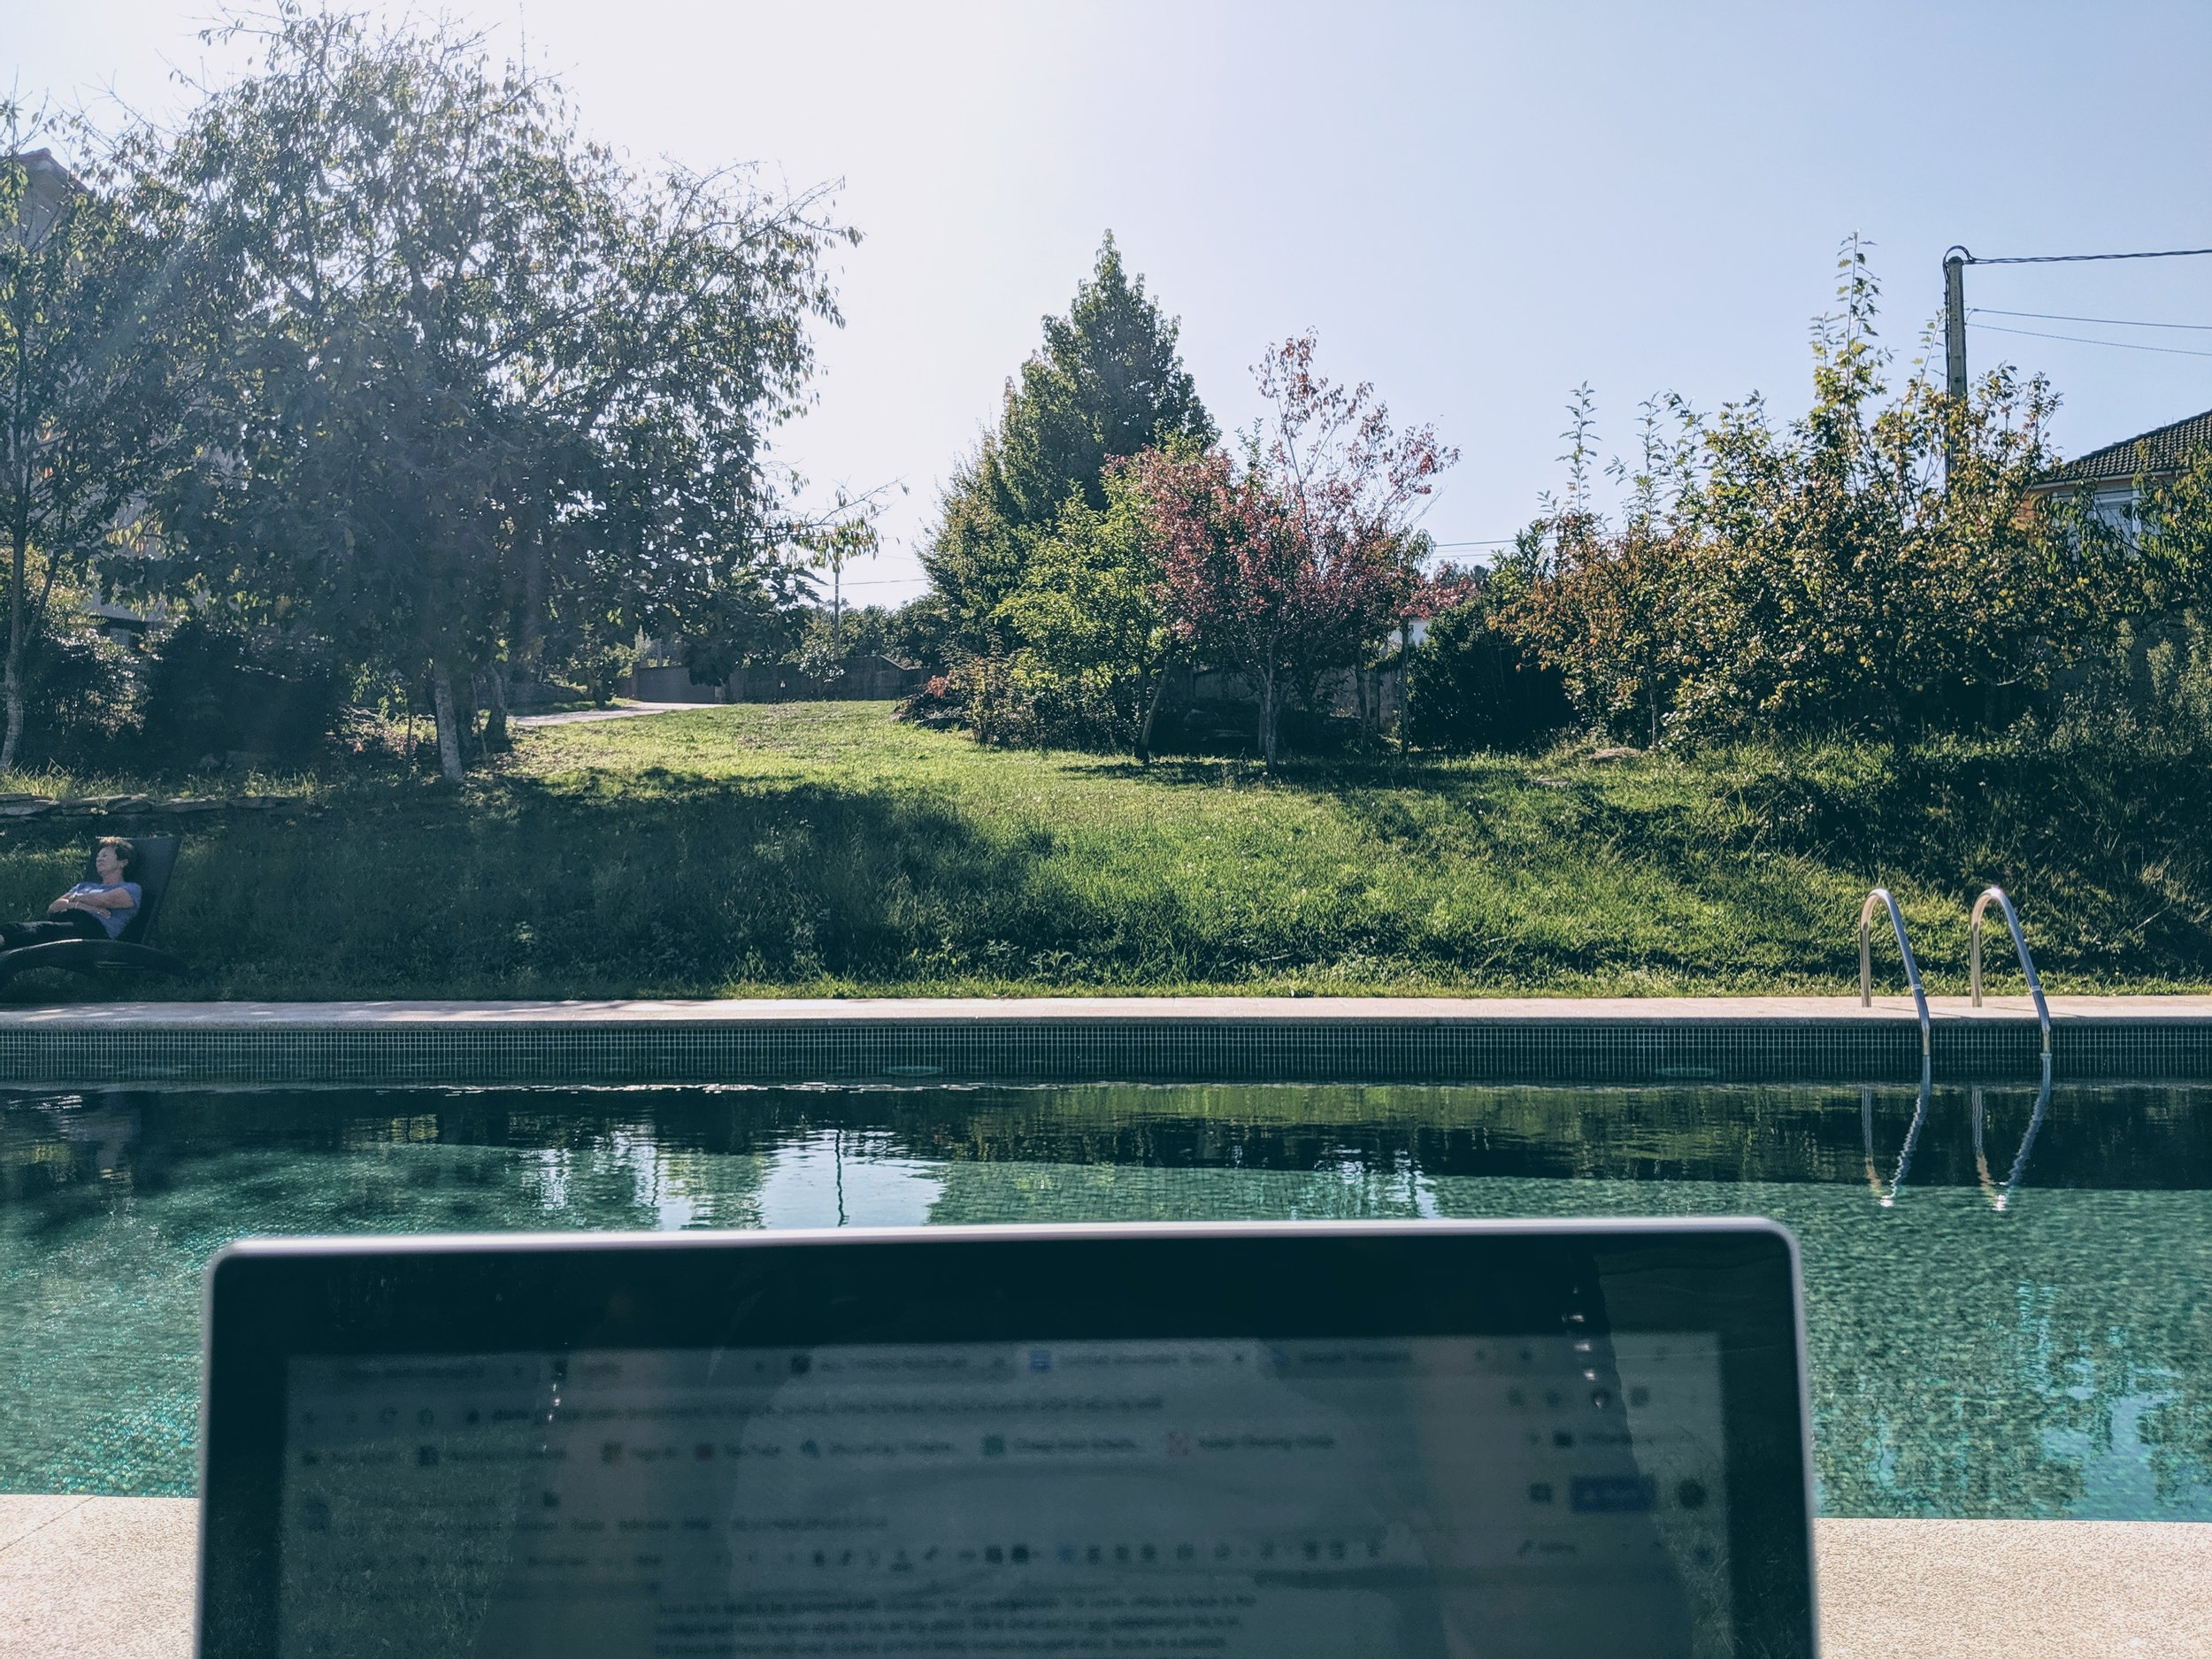 A sunny day spent relaxing by the pool, writing…